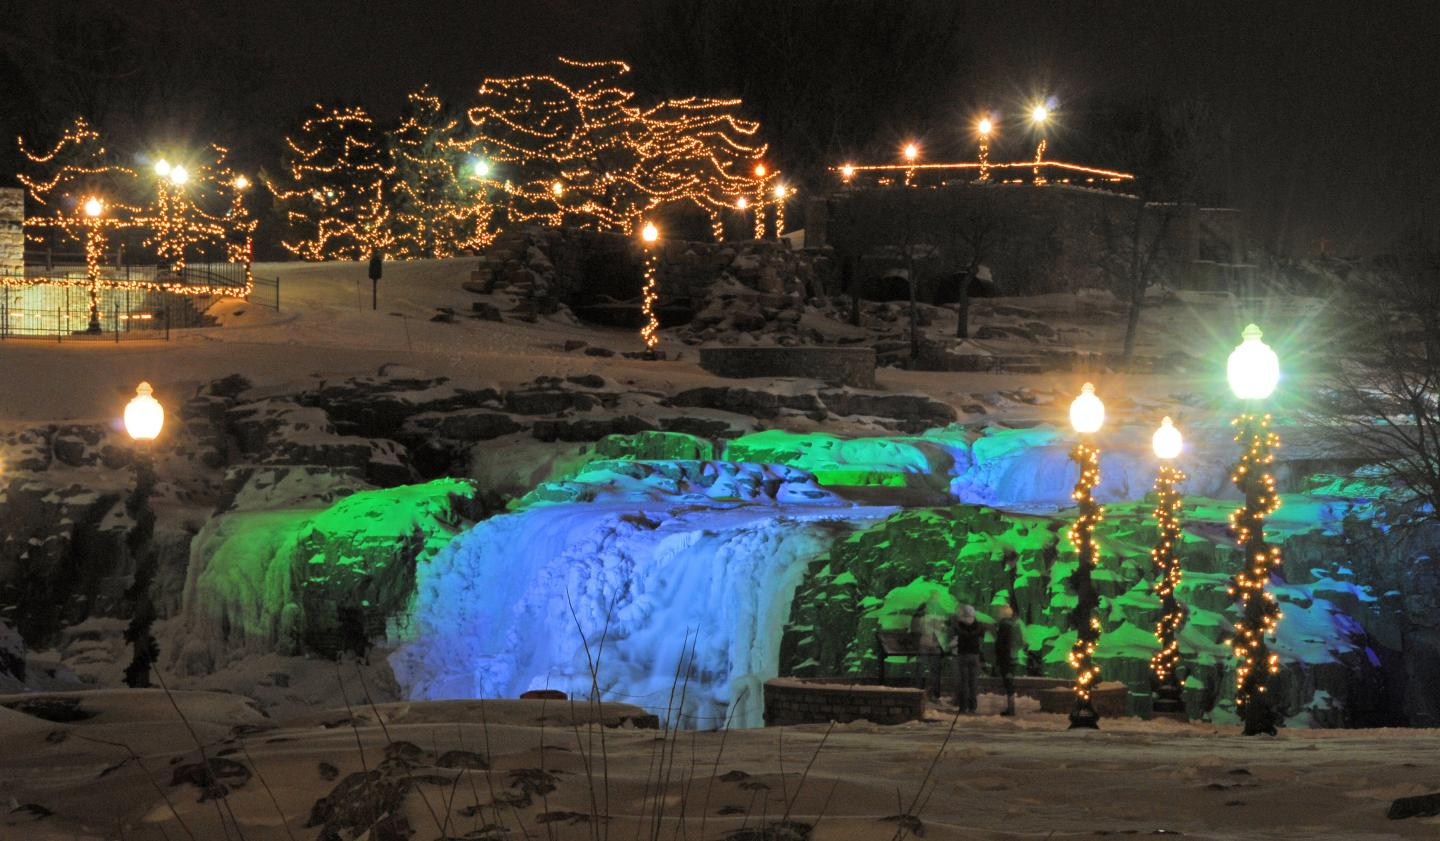 Winter Wonderland, Falls Park, Sioux Falls